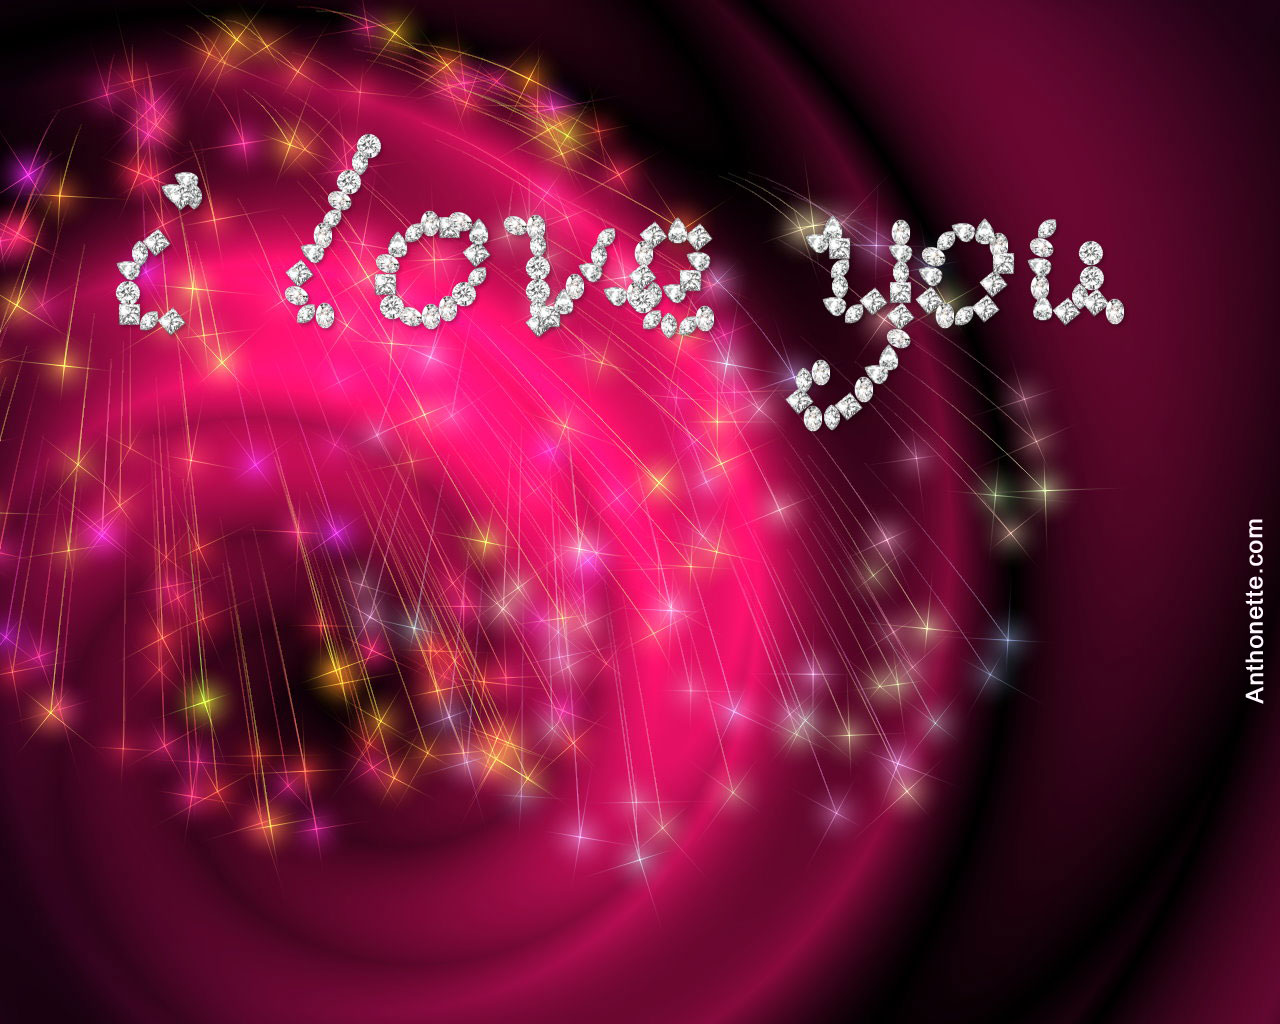 My Name 3d Wallpapers: Wallpaper I Love You Papel De Parede #2